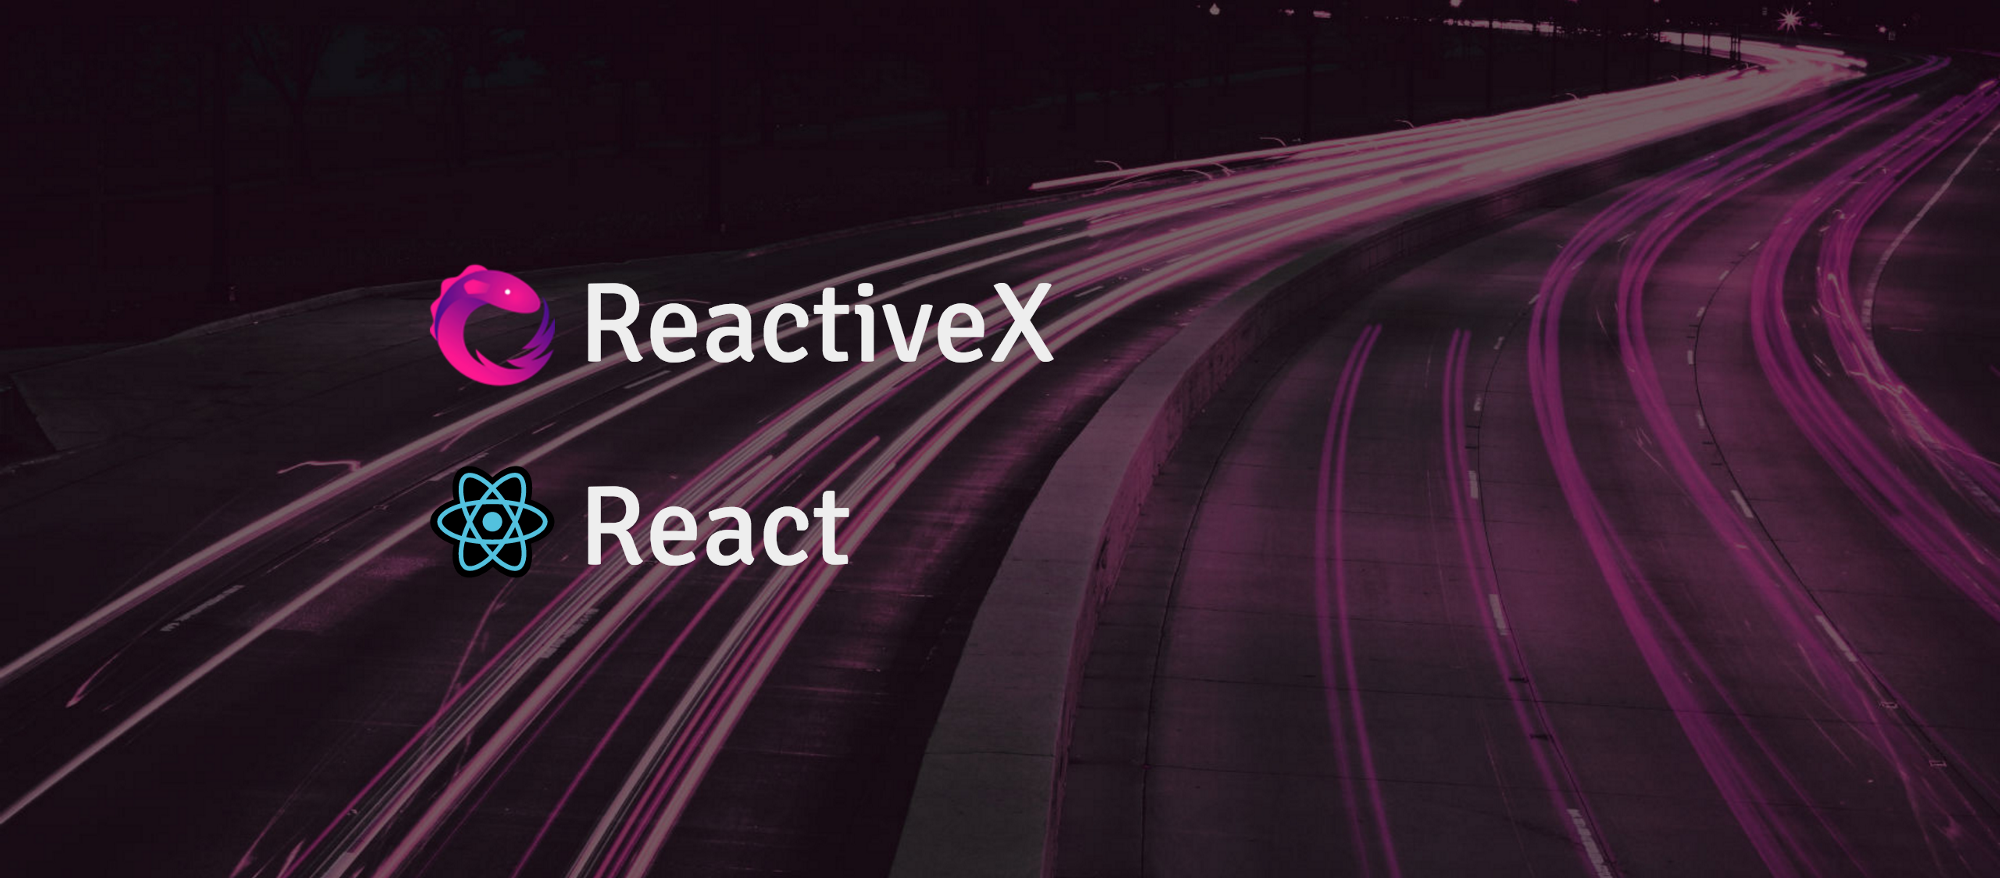 What happens when you use RxJS in React?